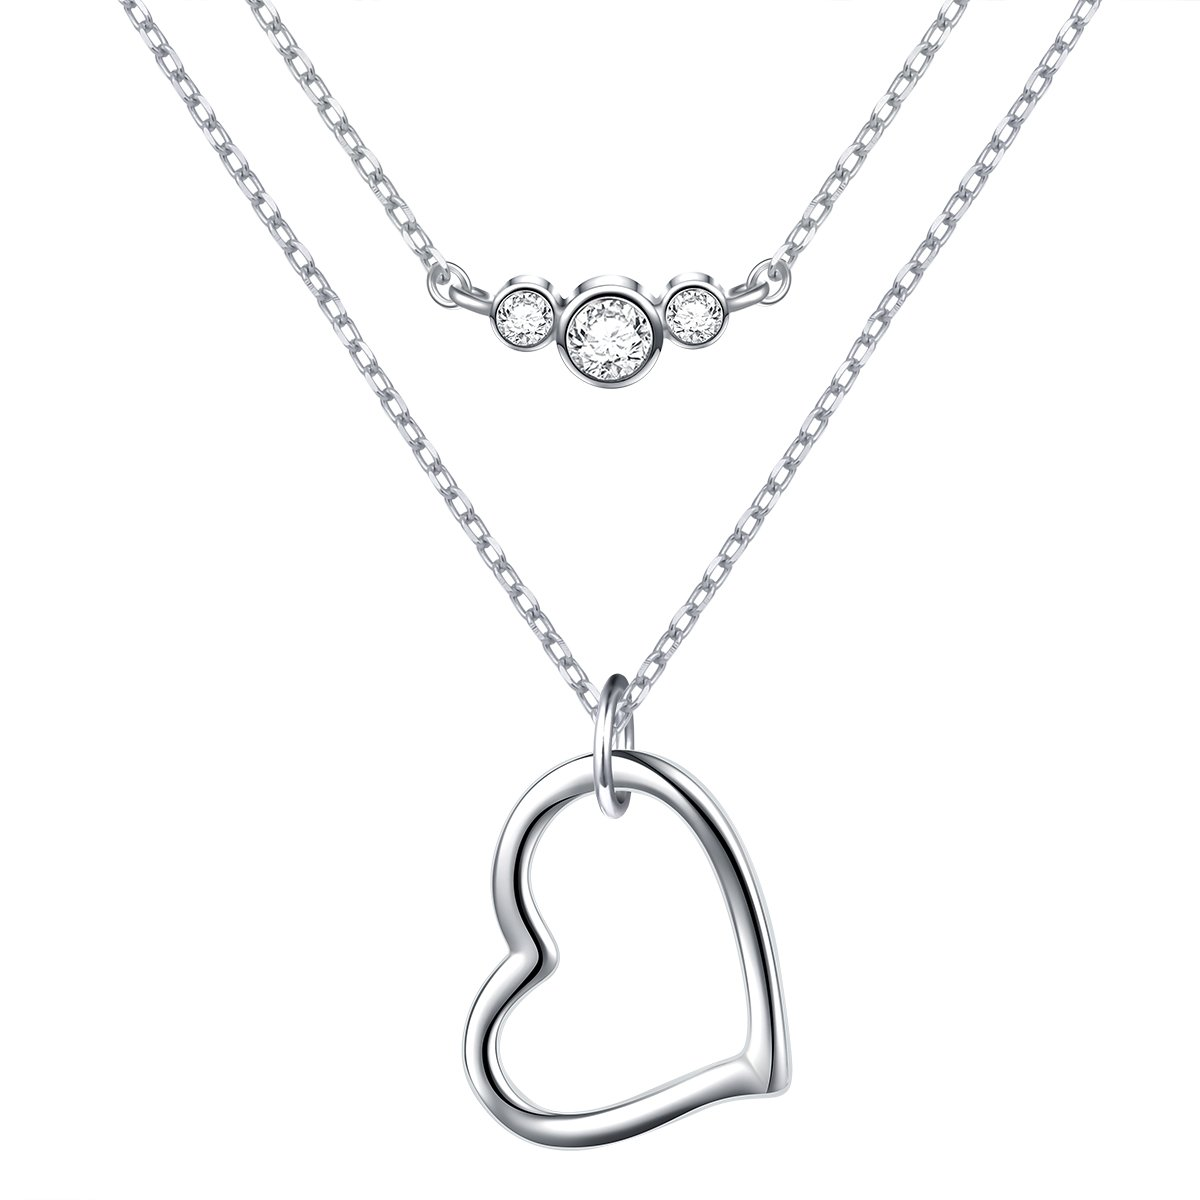 0fb3f672bb2f9 S925 Sterling Silver Double Layered Chain Choker Y Lariat Necklace Gifts  for Women Girls,16+2 inches